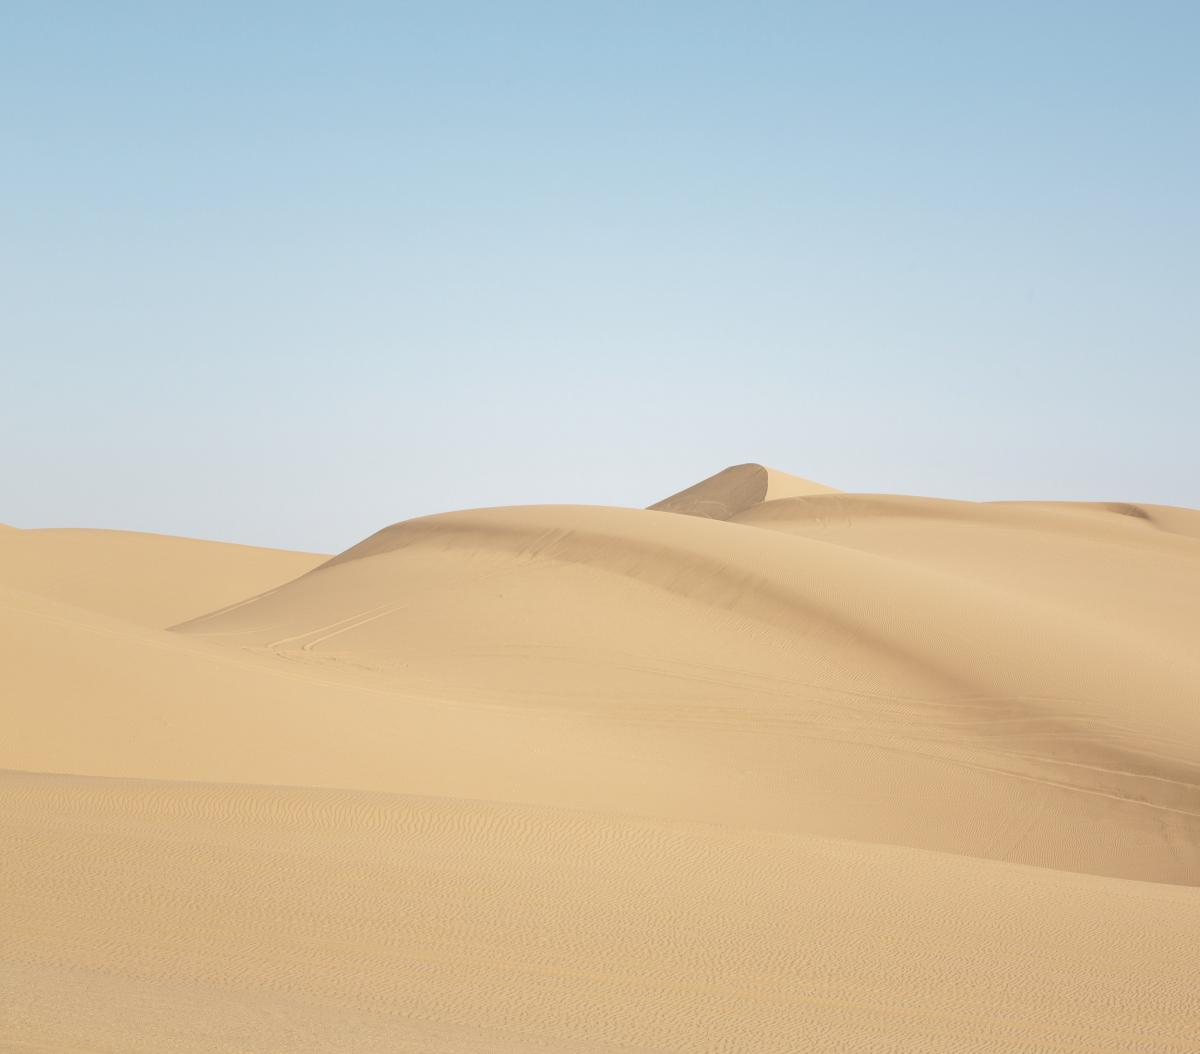 Sand dunes in Southern California. Original image from Carol M. Highsmith's America, Library of Congress collection.